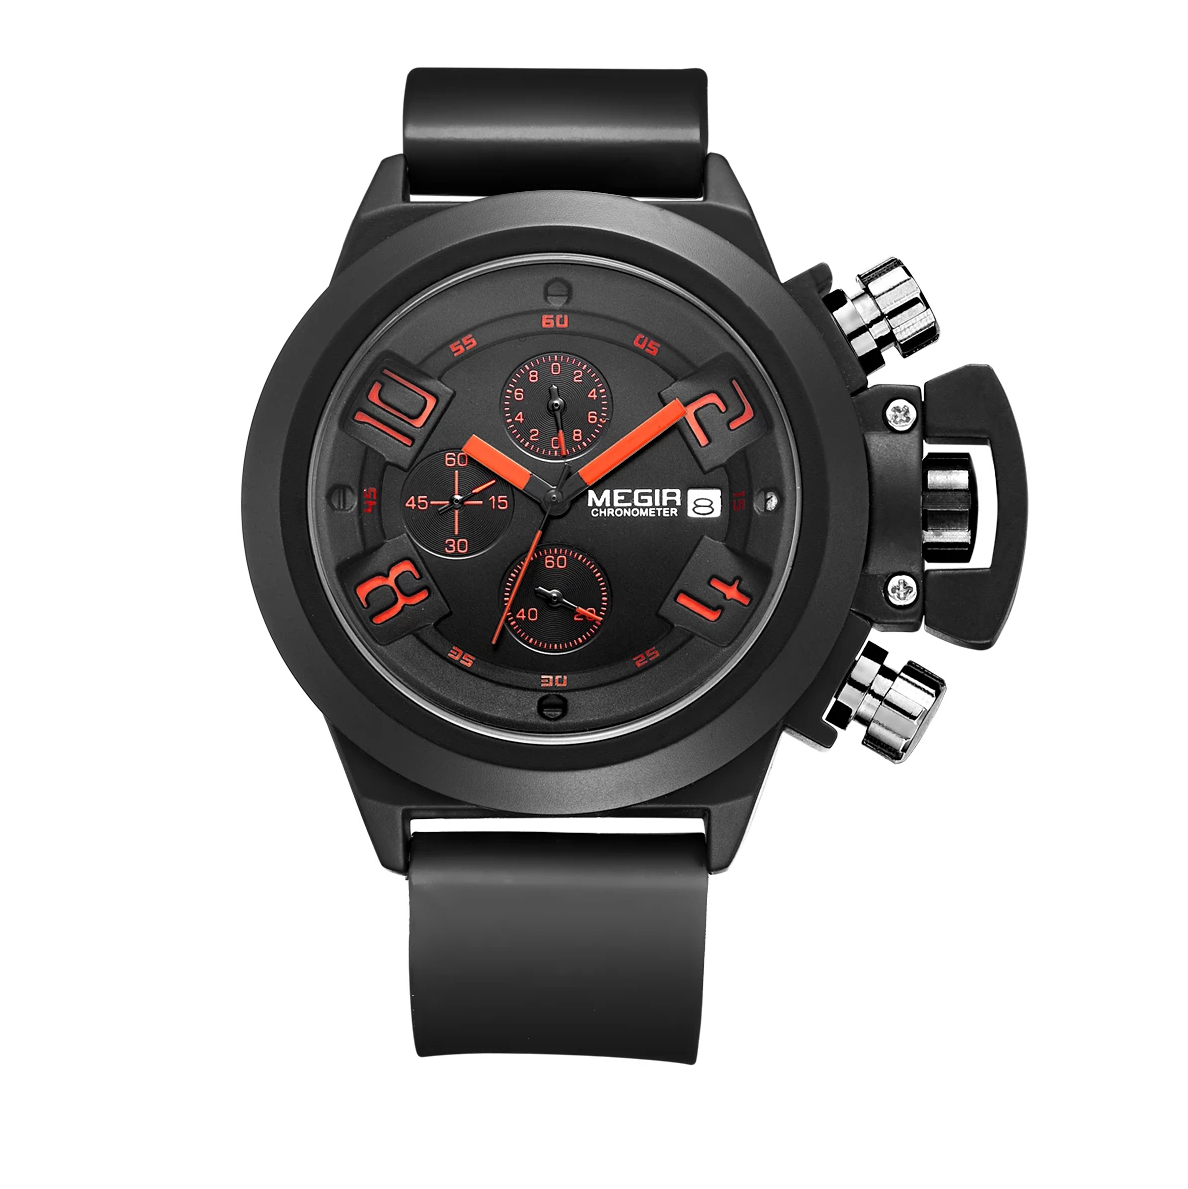 Mens Fashion Waterproof Military Quartz Watches Sports Silicone Strap Chronograph Wrist Watch for Men 2002 - MEGIR